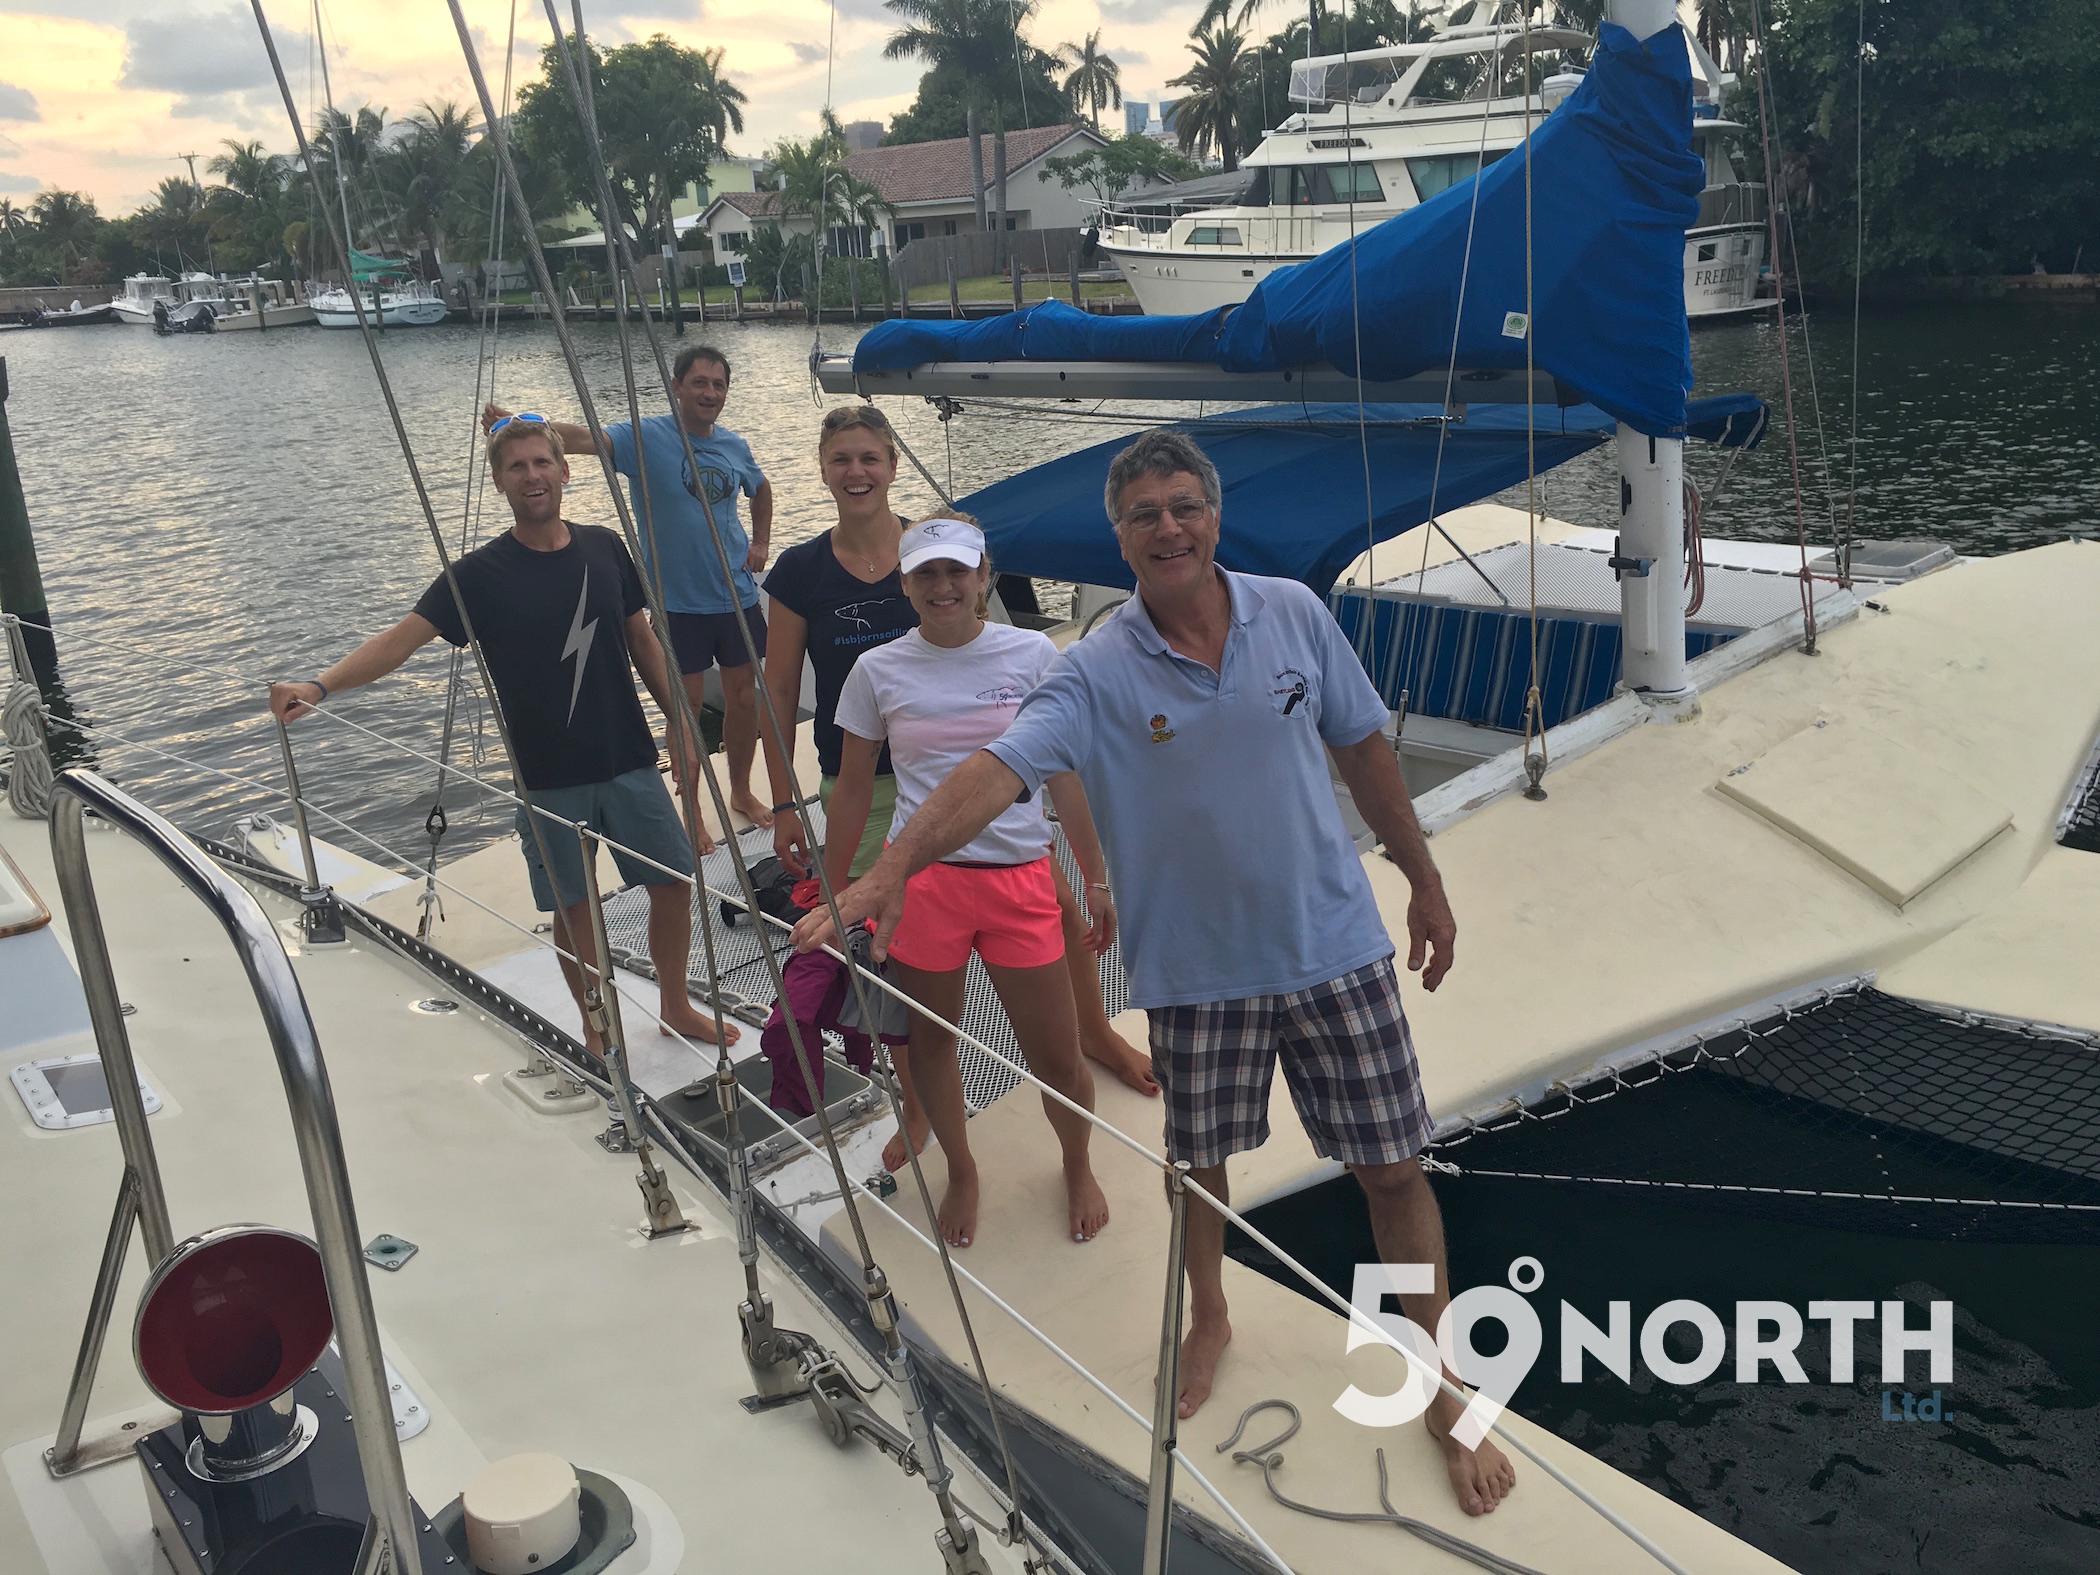 Visited our friend Pam Walls for a few days in Ft. Lauderdale, went our on an afternoon sail with Etienne from ATN inc. March 2016